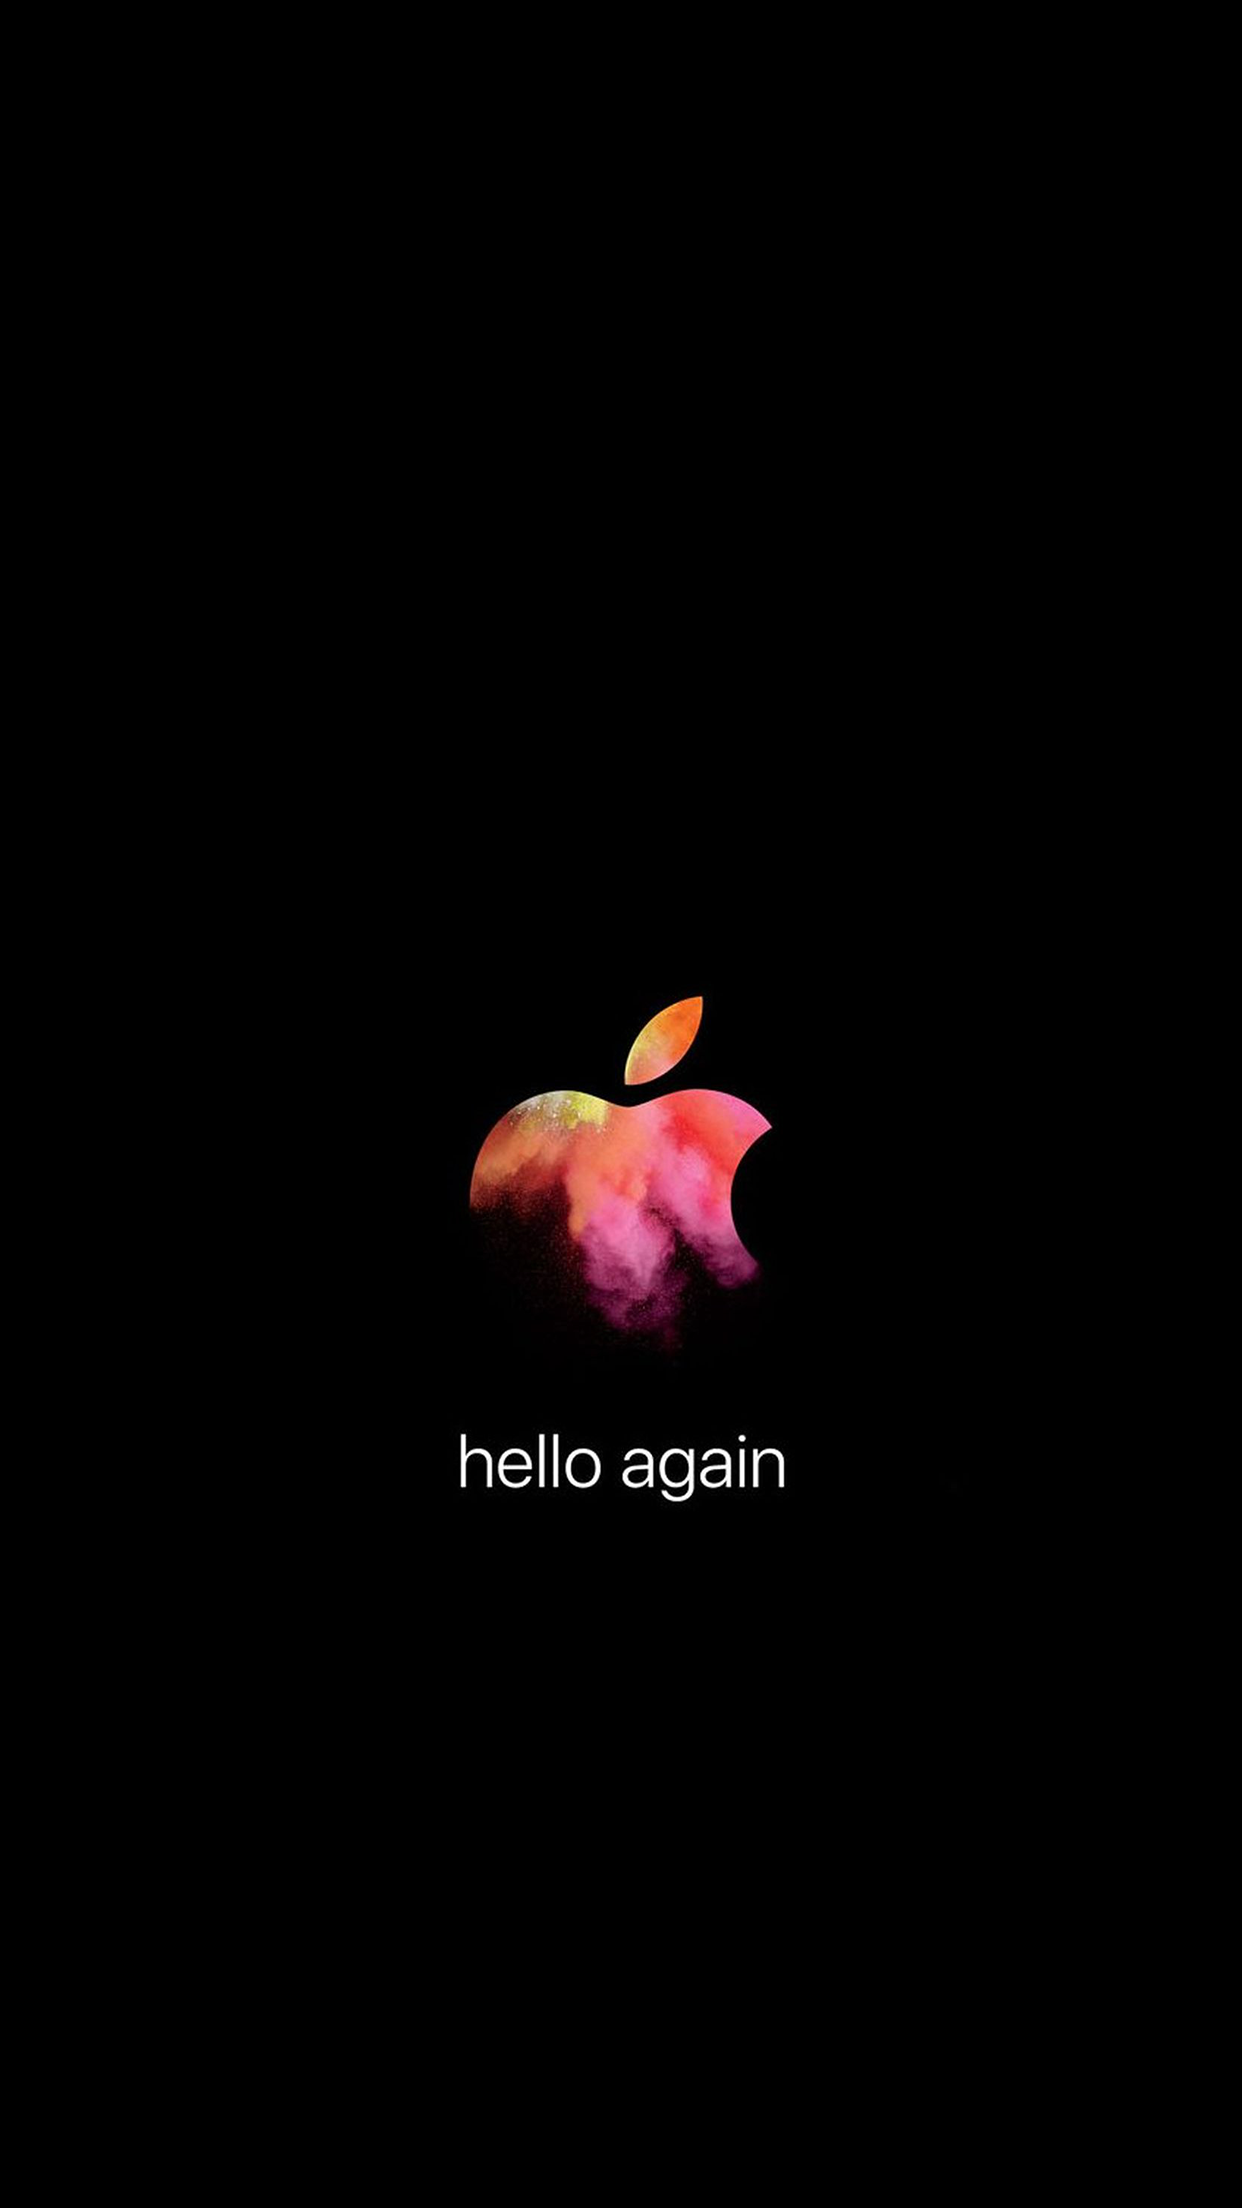 Apple October 27 Event Wallpapers Hello Again